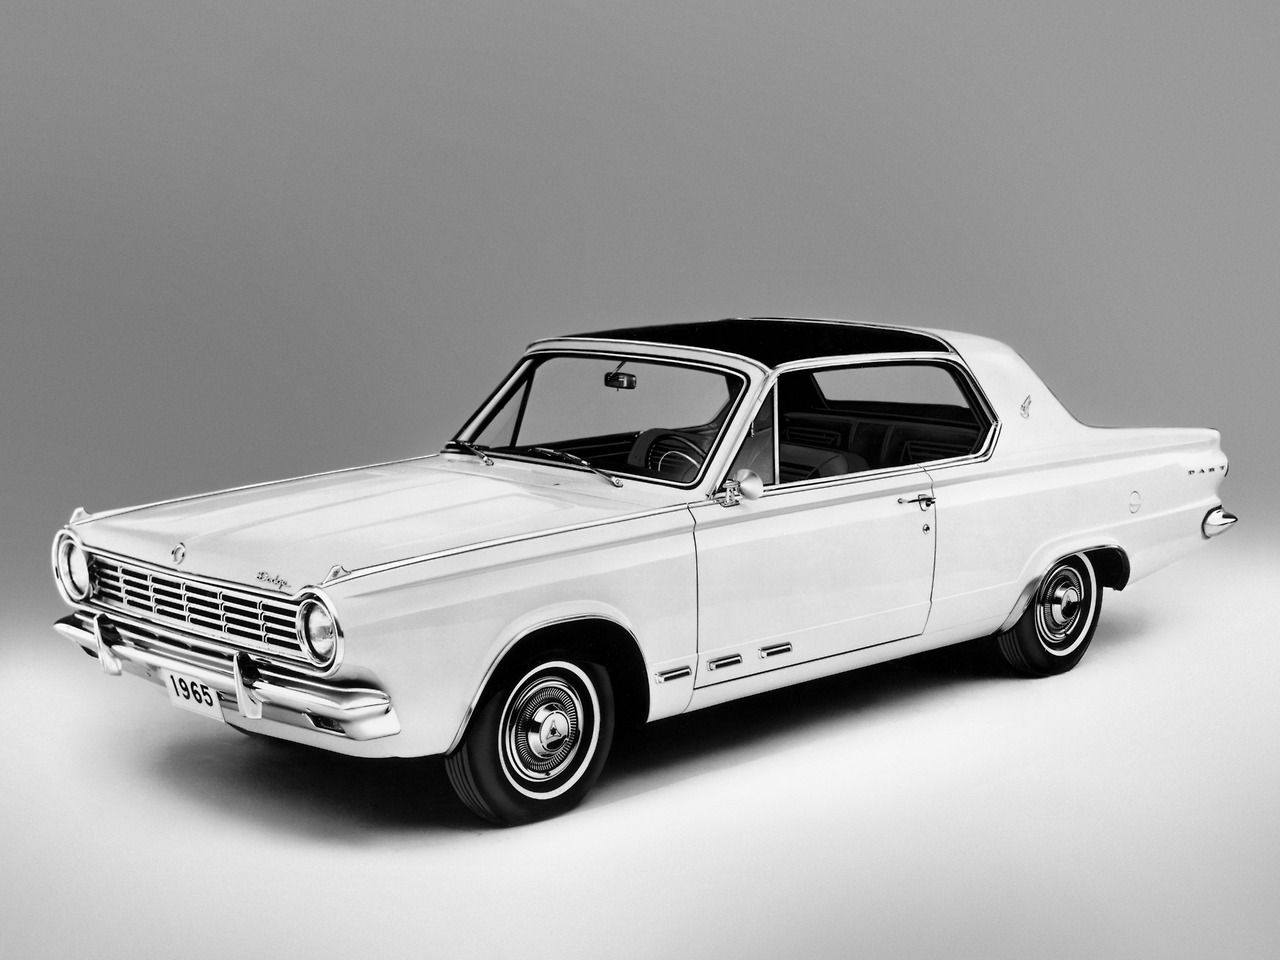 1965 Dodge Dart White I Loved This Car When I Had One With Images